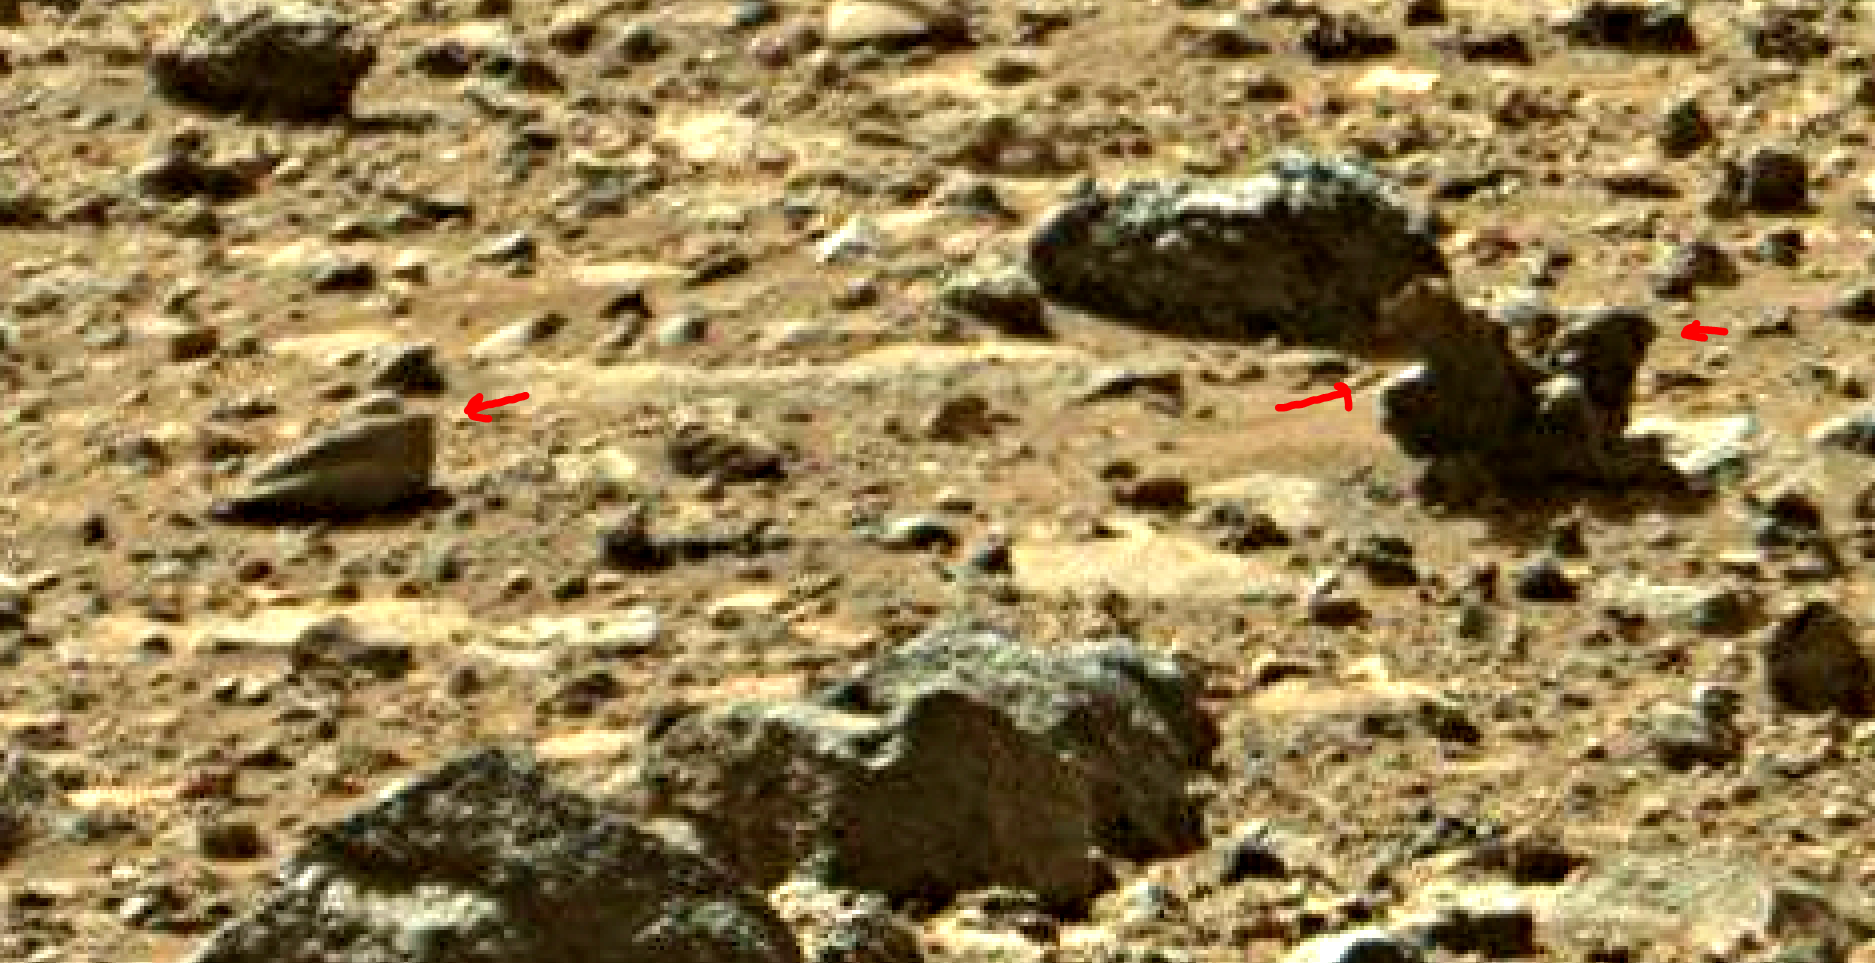 mars sol 1405 anomaly artifacts 5a was life on mars